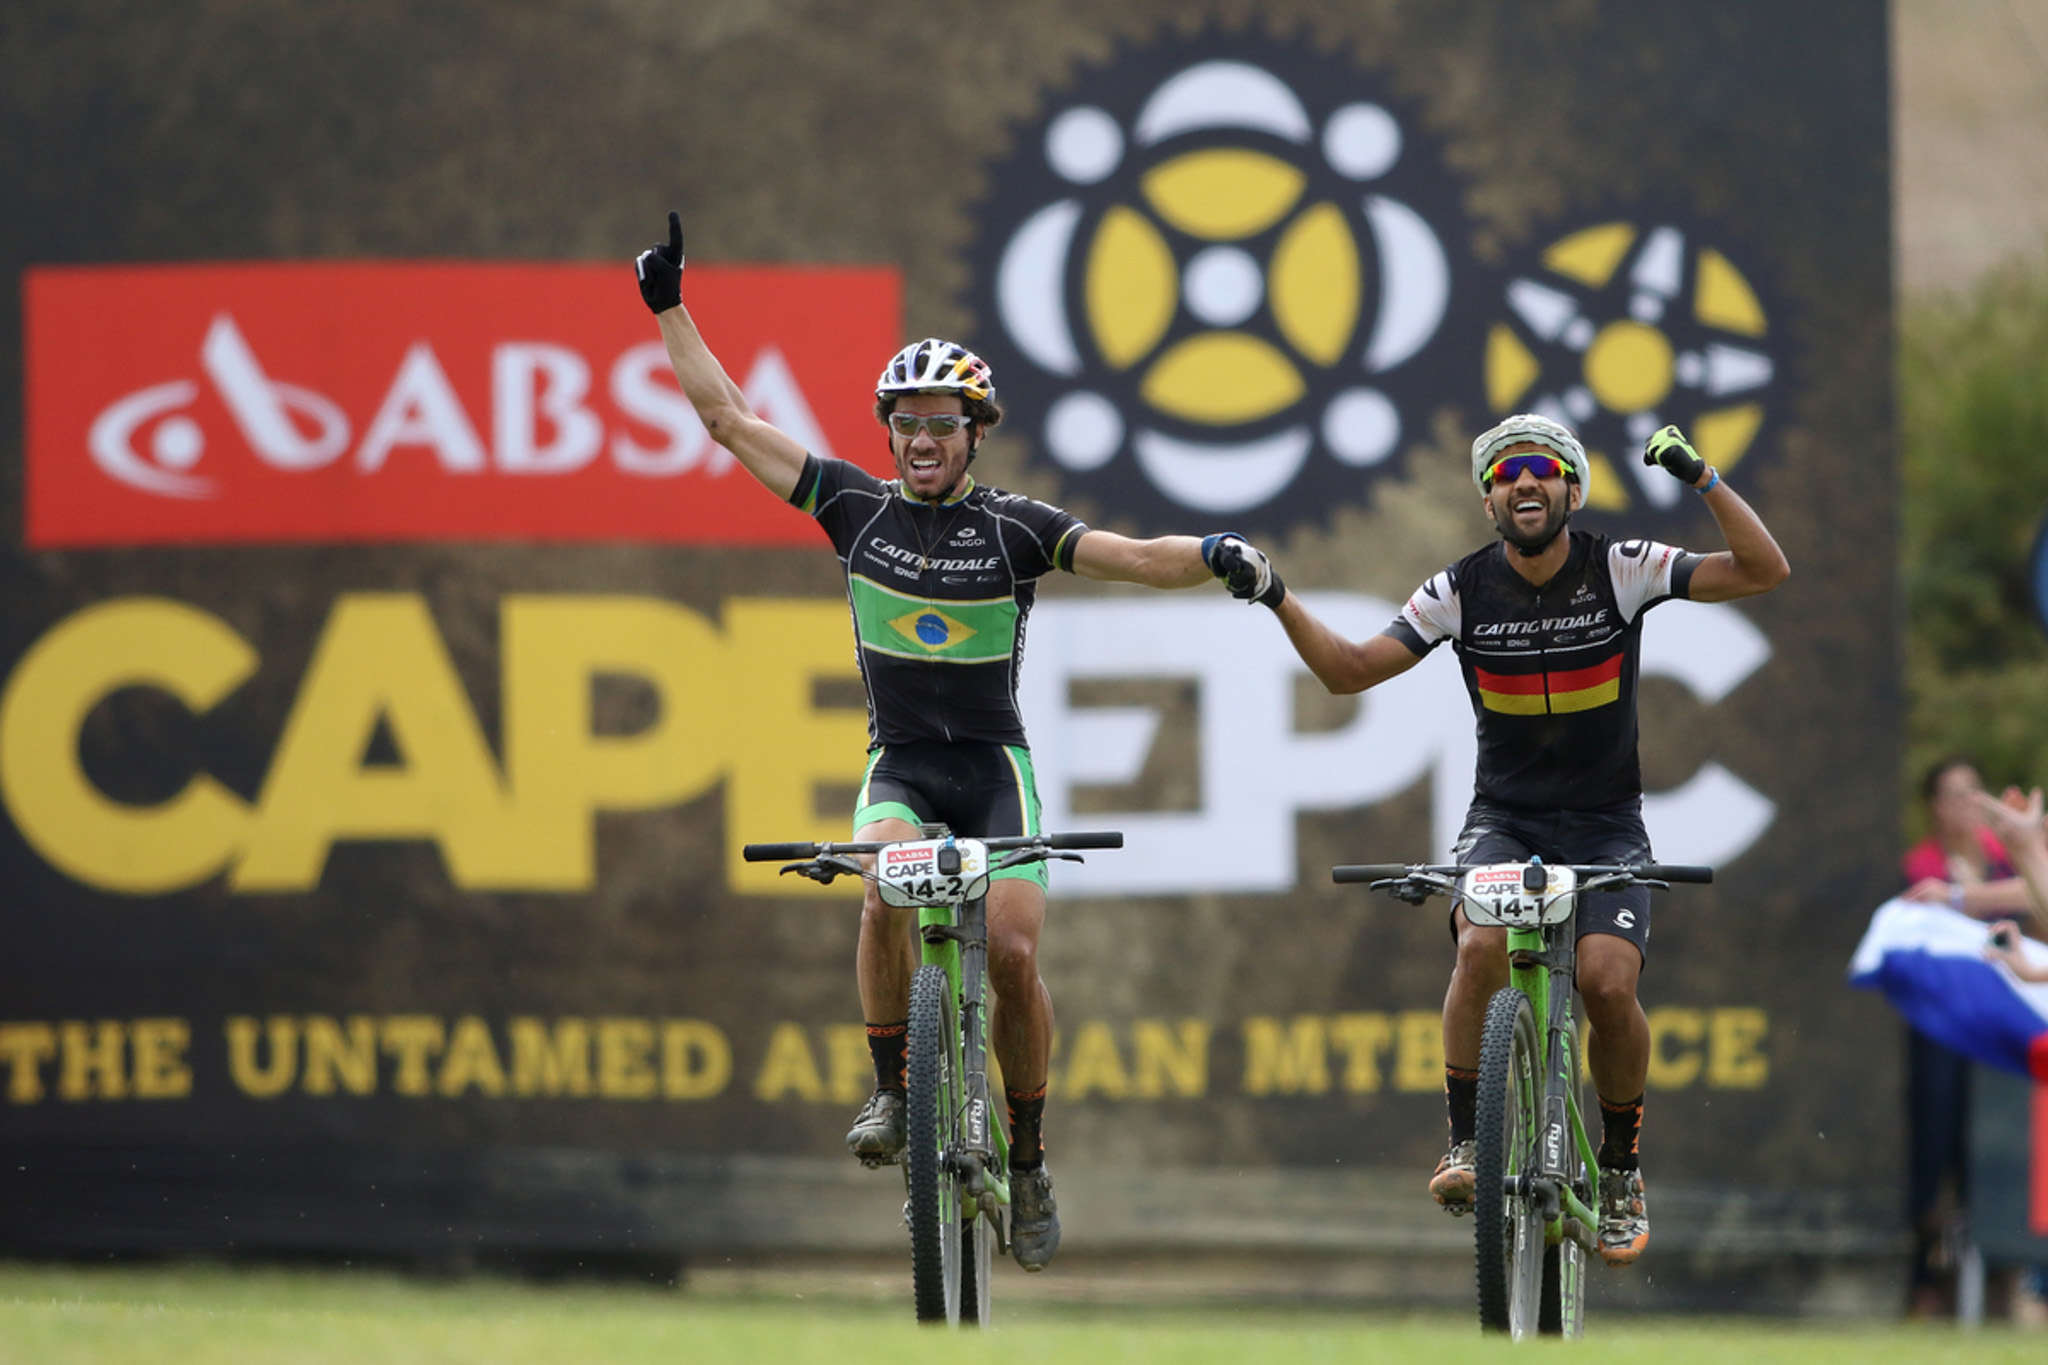 Henrique Avancini and Manuel Fumic of Cannondale Factory Racing celebrate winning the final stage during the final stage (stage 7) of the 2016 Absa Cape Epic Mountain Bike stage race from Boschendal in Stellenbosch to Meerendal Wine Estate in Durbanville, South Africa on the 20th March 2016 Photo by Shaun Roy/Cape Epic/SPORTZPICS PLEASE ENSURE THE APPROPRIATE CREDIT IS GIVEN TO THE PHOTOGRAPHER AND SPORTZPICS ALONG WITH THE ABSA CAPE EPIC {ace2016}